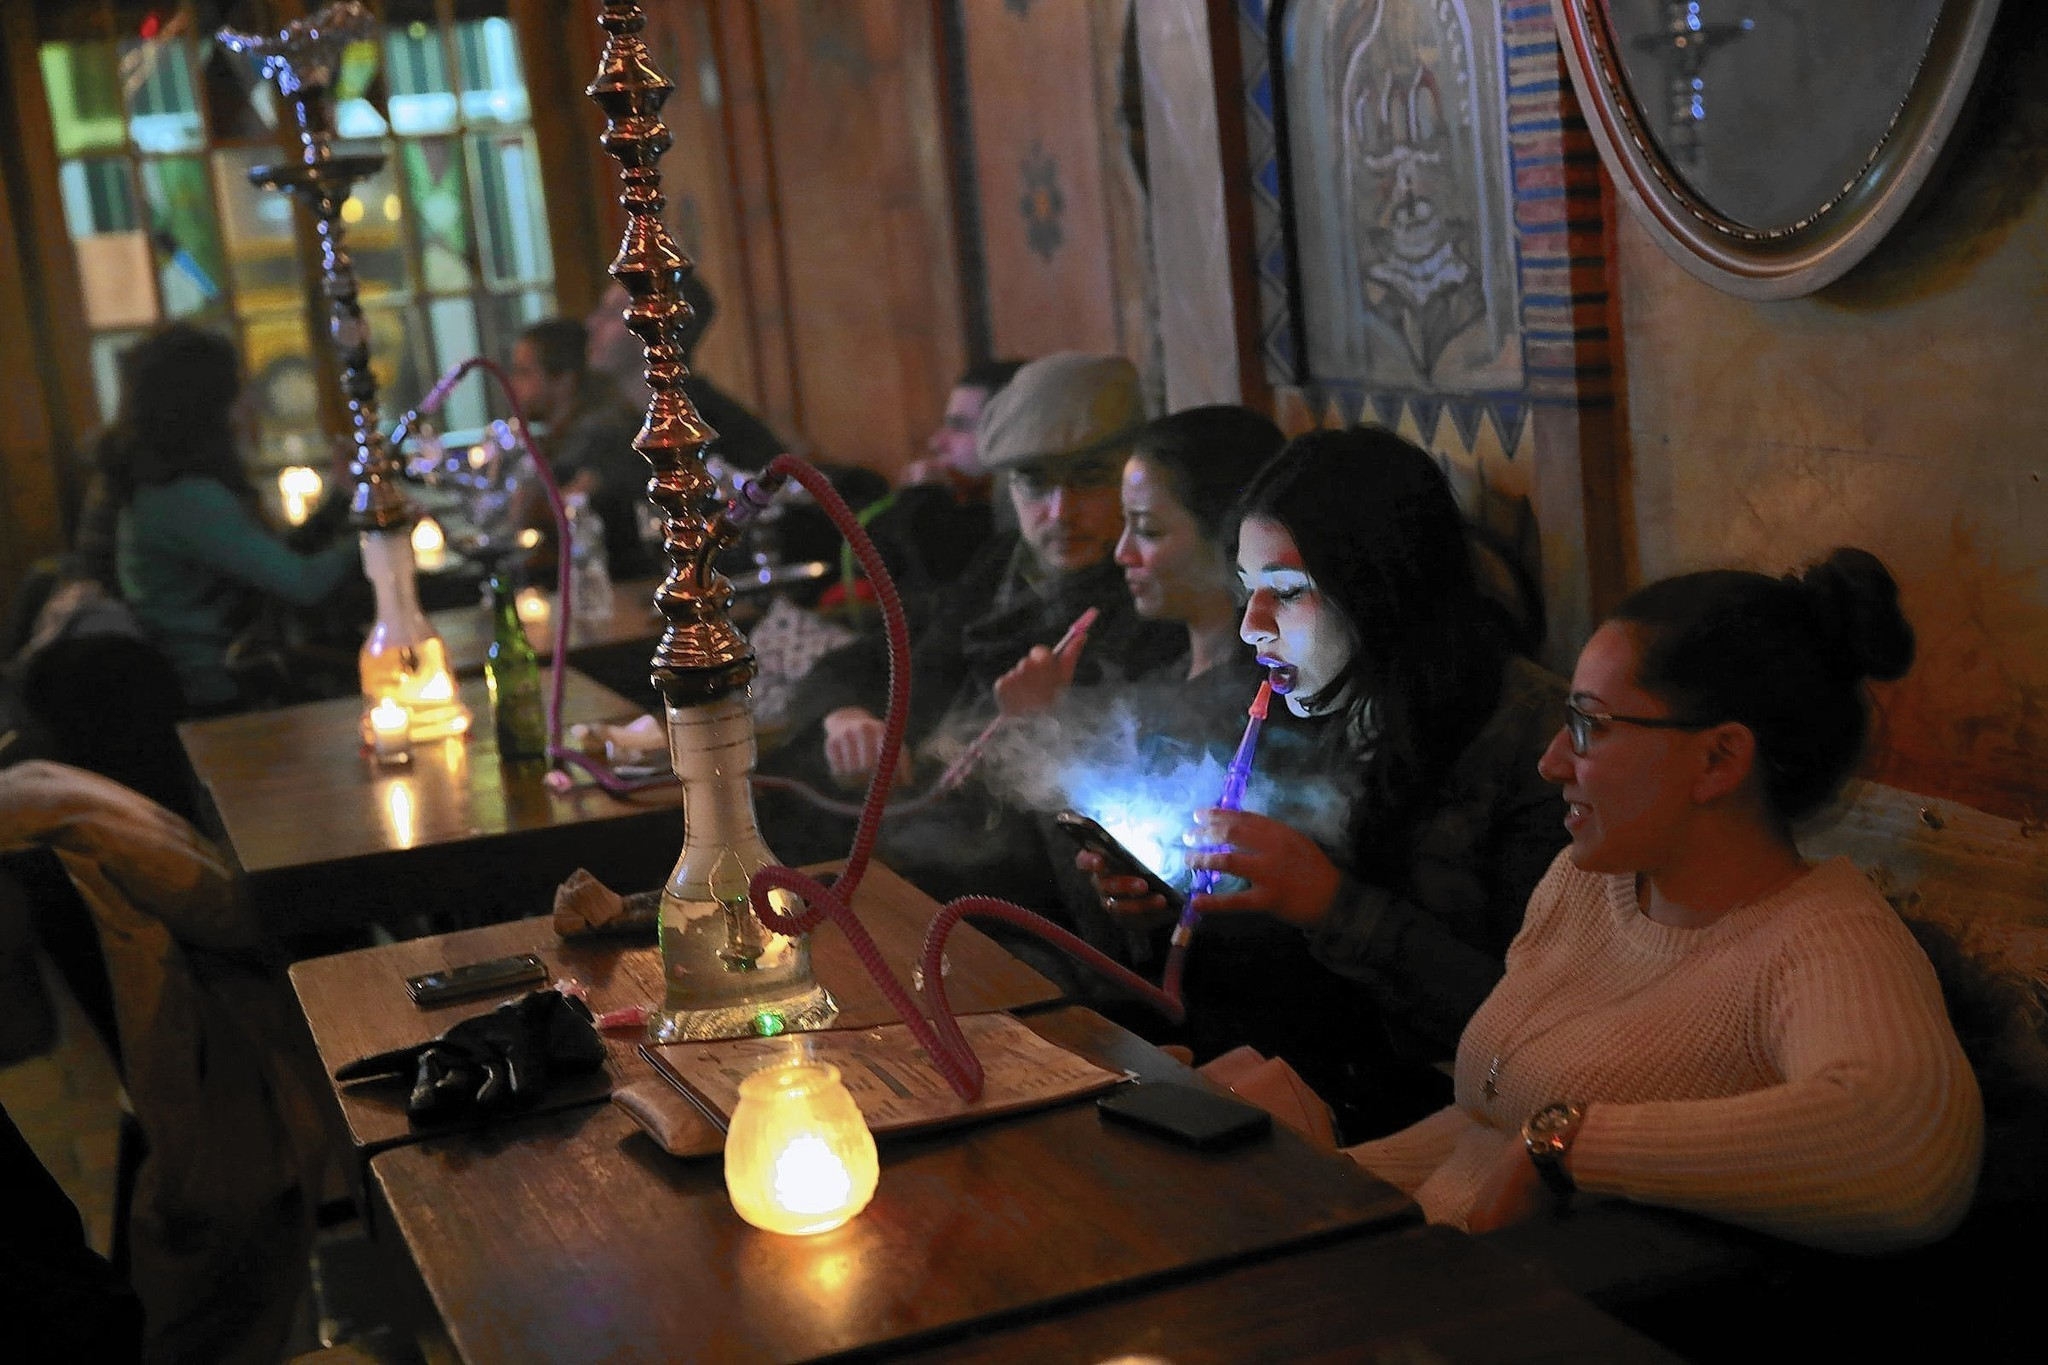 New York crackdown on hookah bars generates some blowback